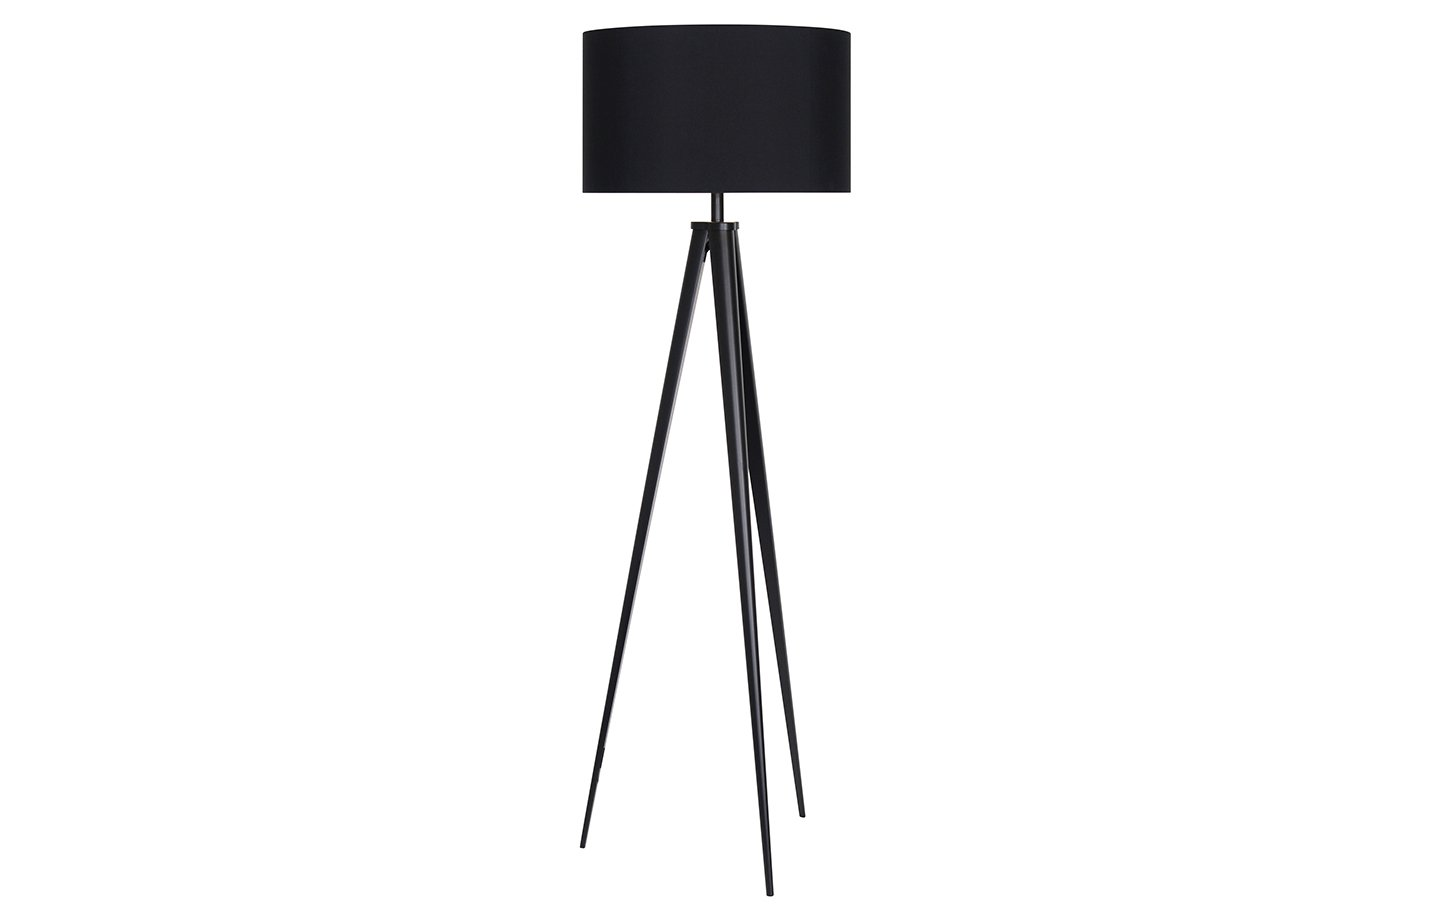 Paso basic 50 F1 Floor lamp – Black